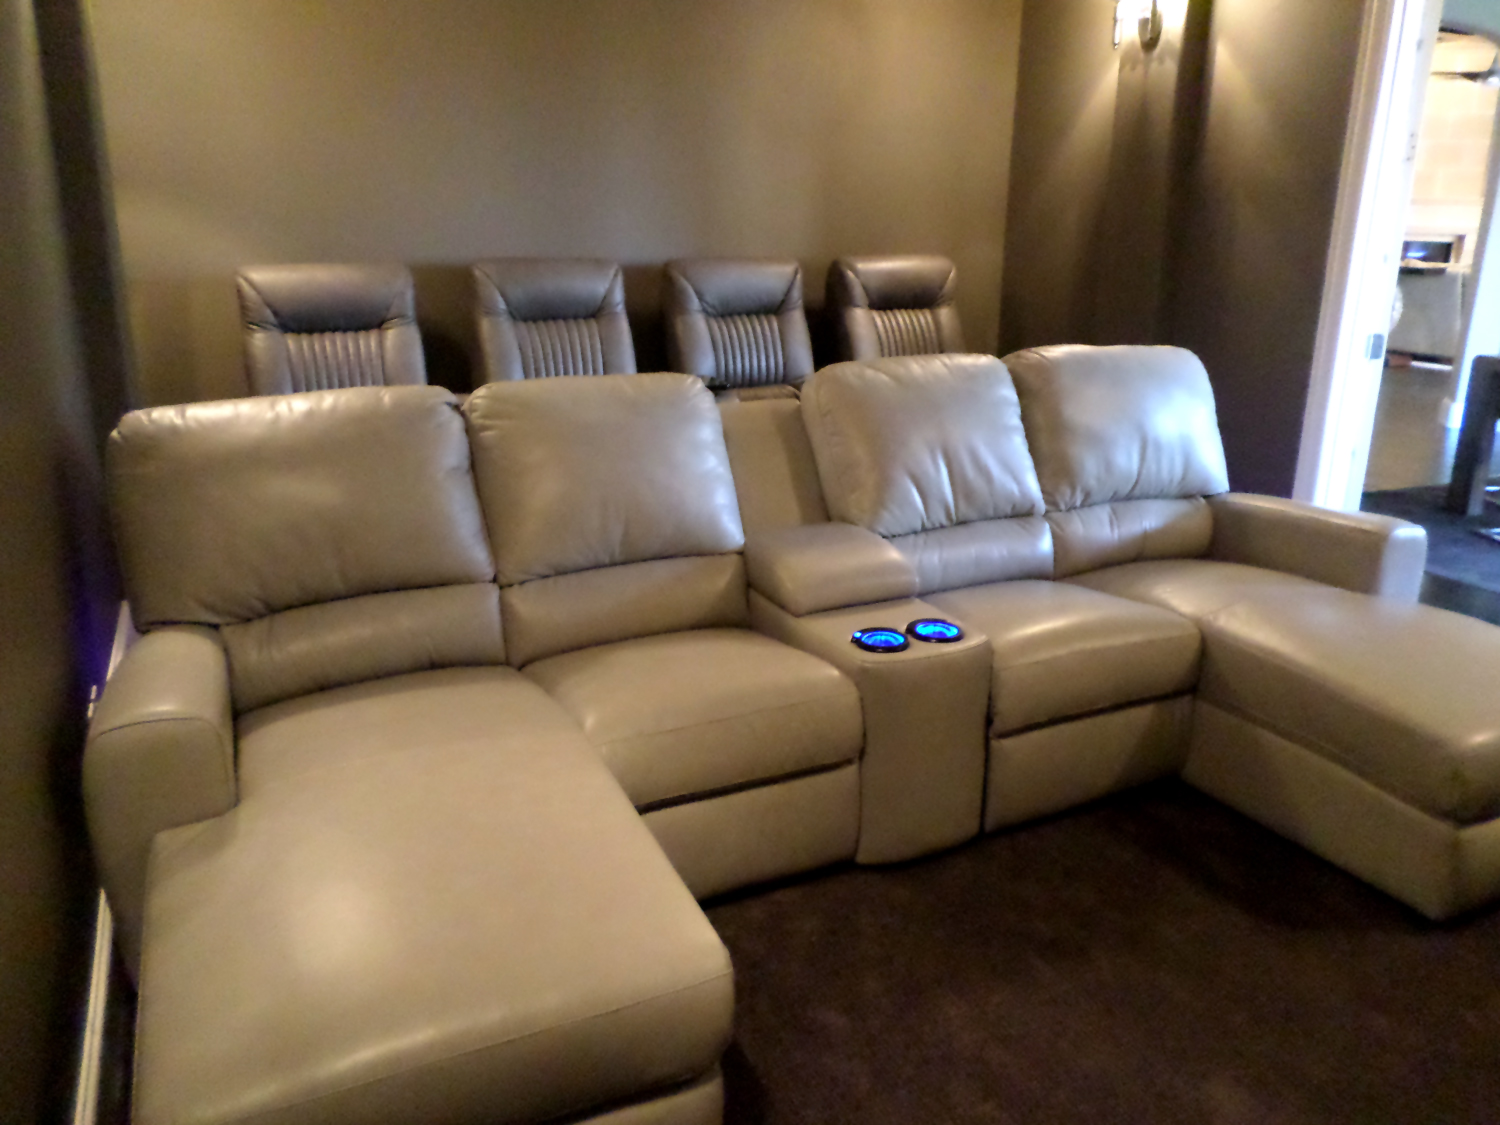 Theatre Room Furniture Palliser Theater Seating With Media Sofa Gorgeous Room